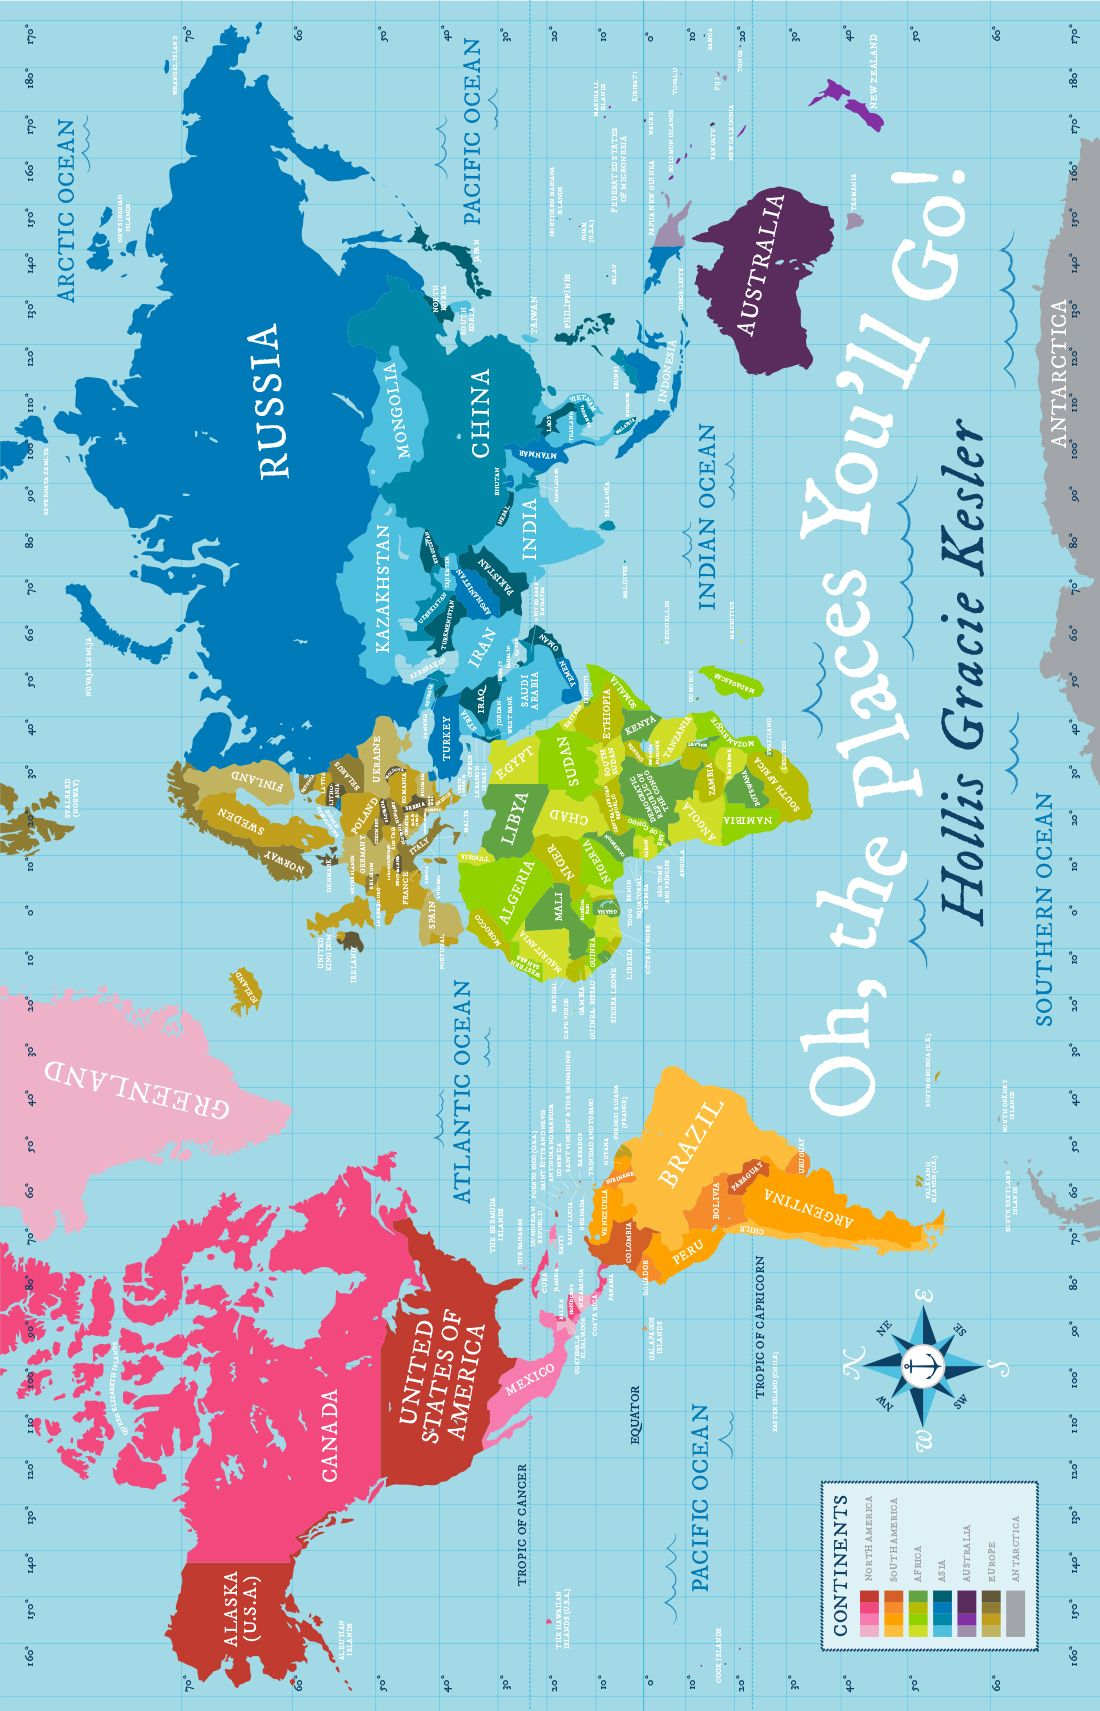 Love this oragnic world map quilteven has a continent key for love this oragnic world map quilteven has a continent key for gumiabroncs Choice Image